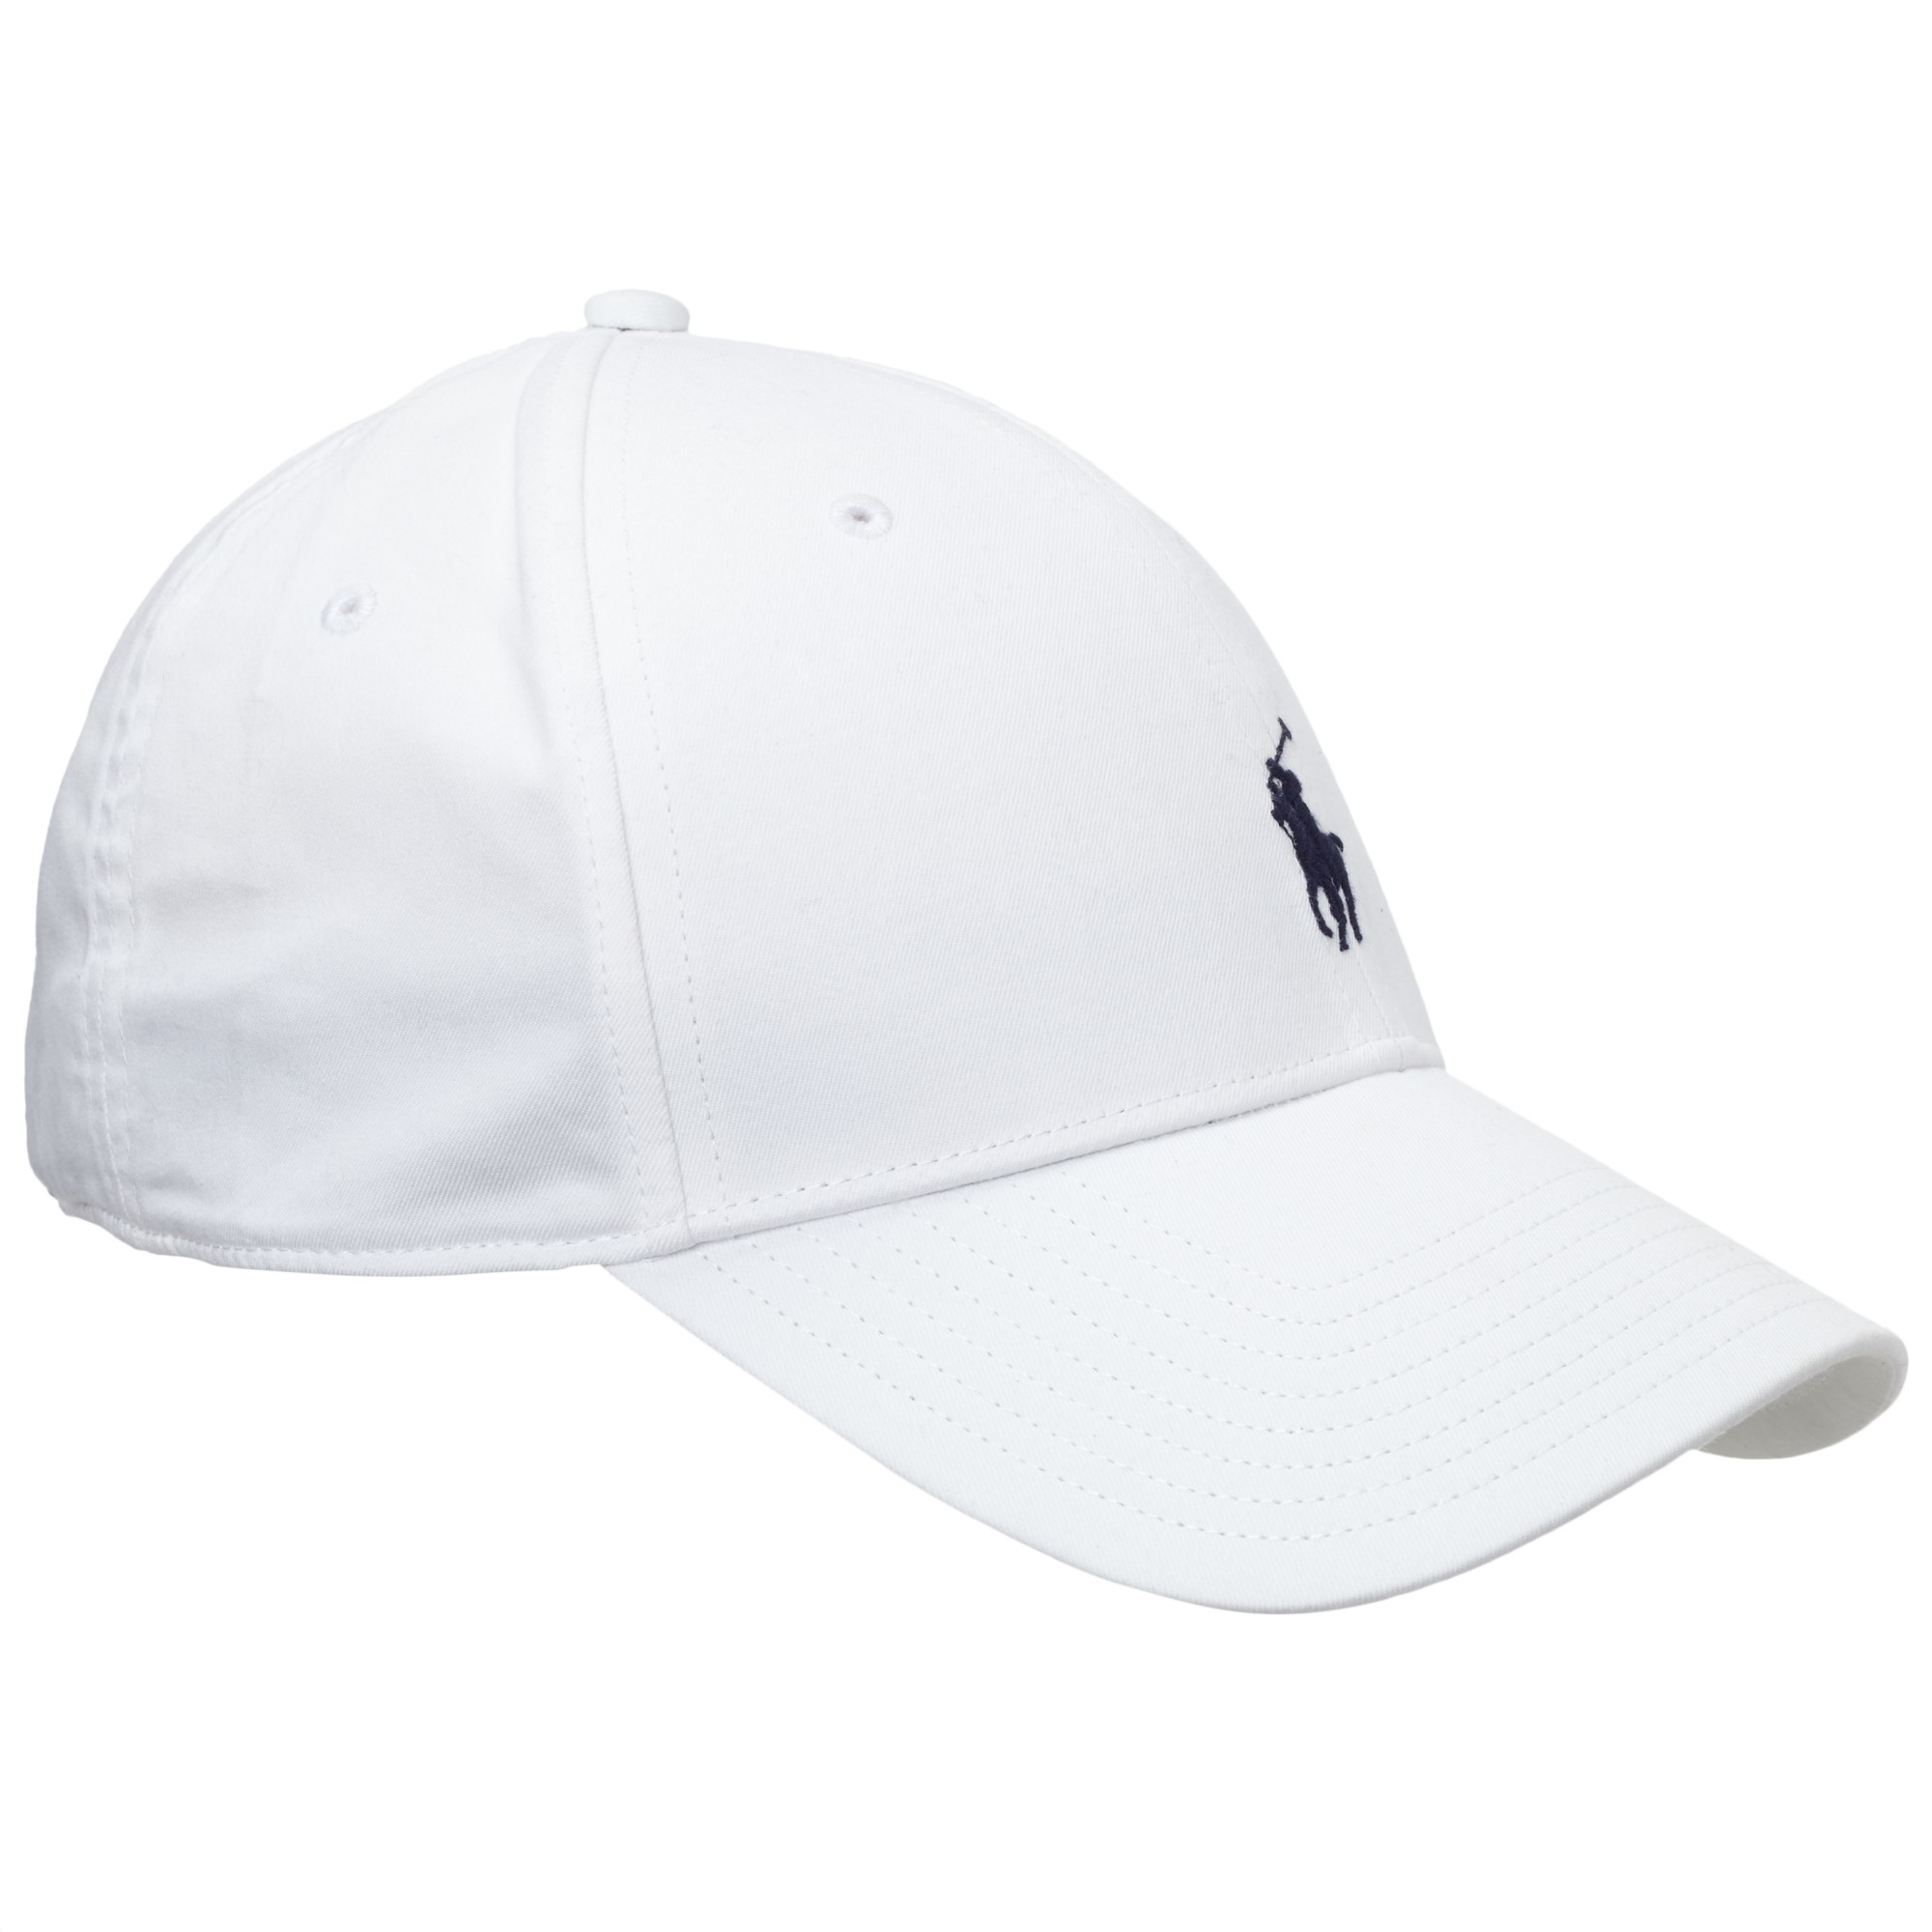 10354338fc9 Pink Pony Polo Golf By Fairway Baseball Cap in White for Men - Lyst